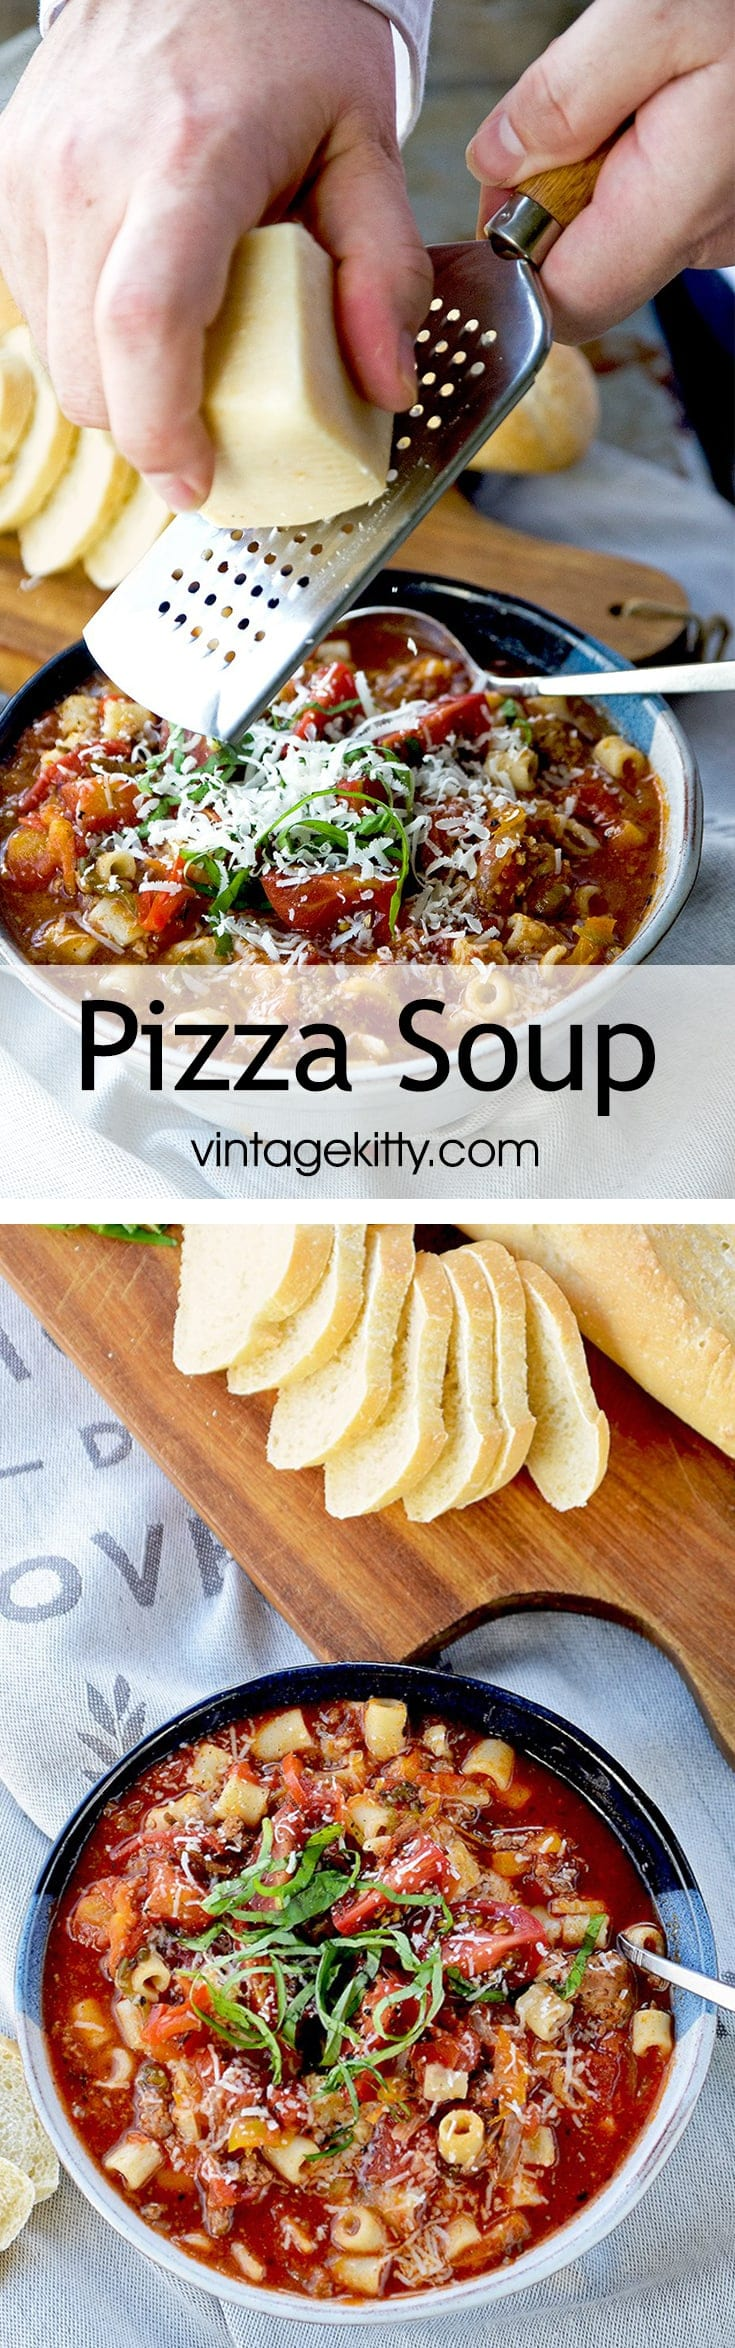 Pizza Soup Pin 1 - Pizza Soup with Peppers, Italian Sausage and Spices